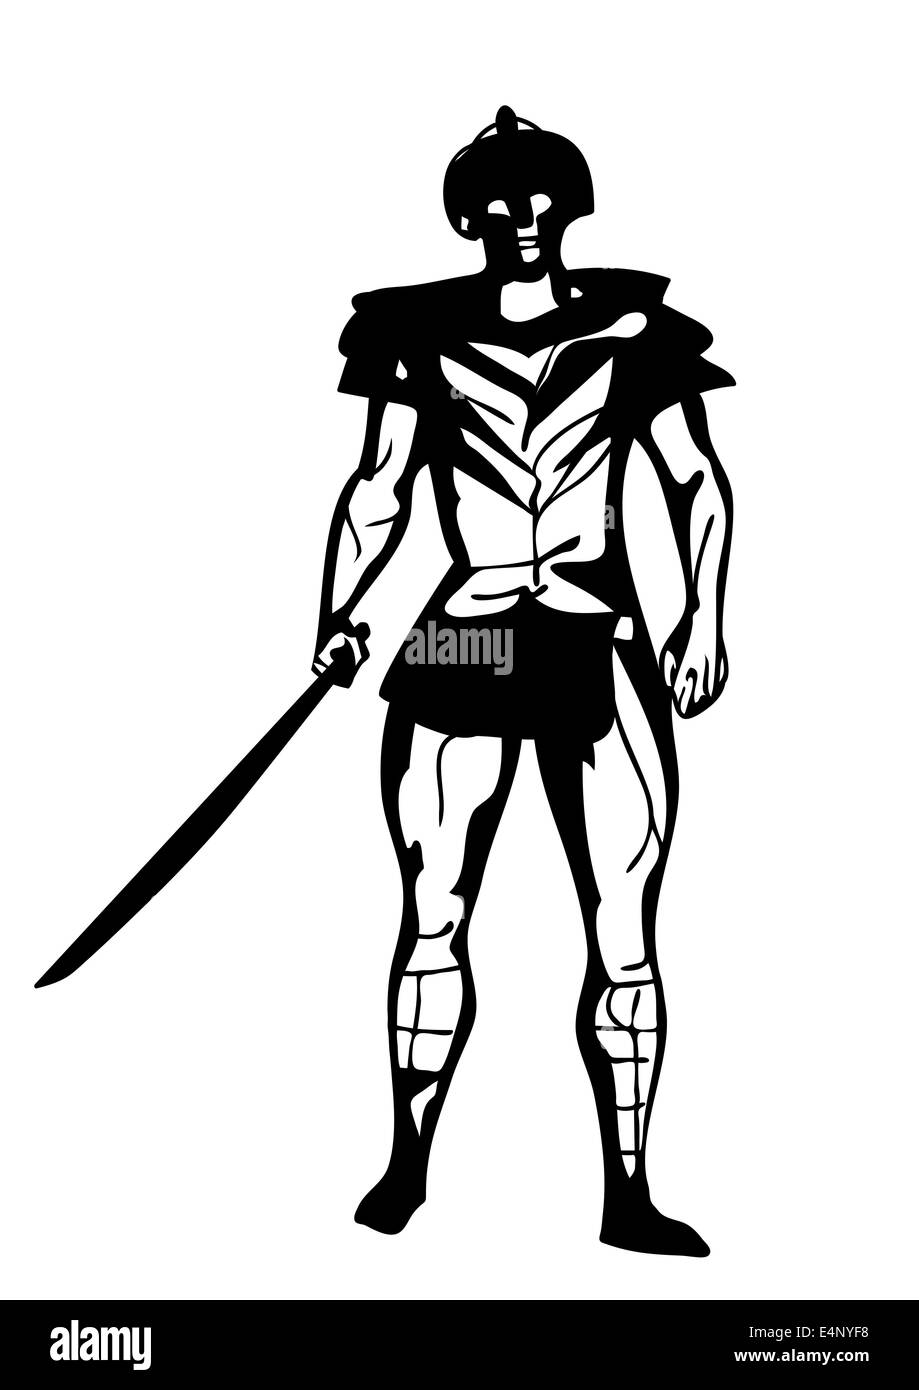 It's just a graphic of Zany Roman Soldier Uniform Labelled